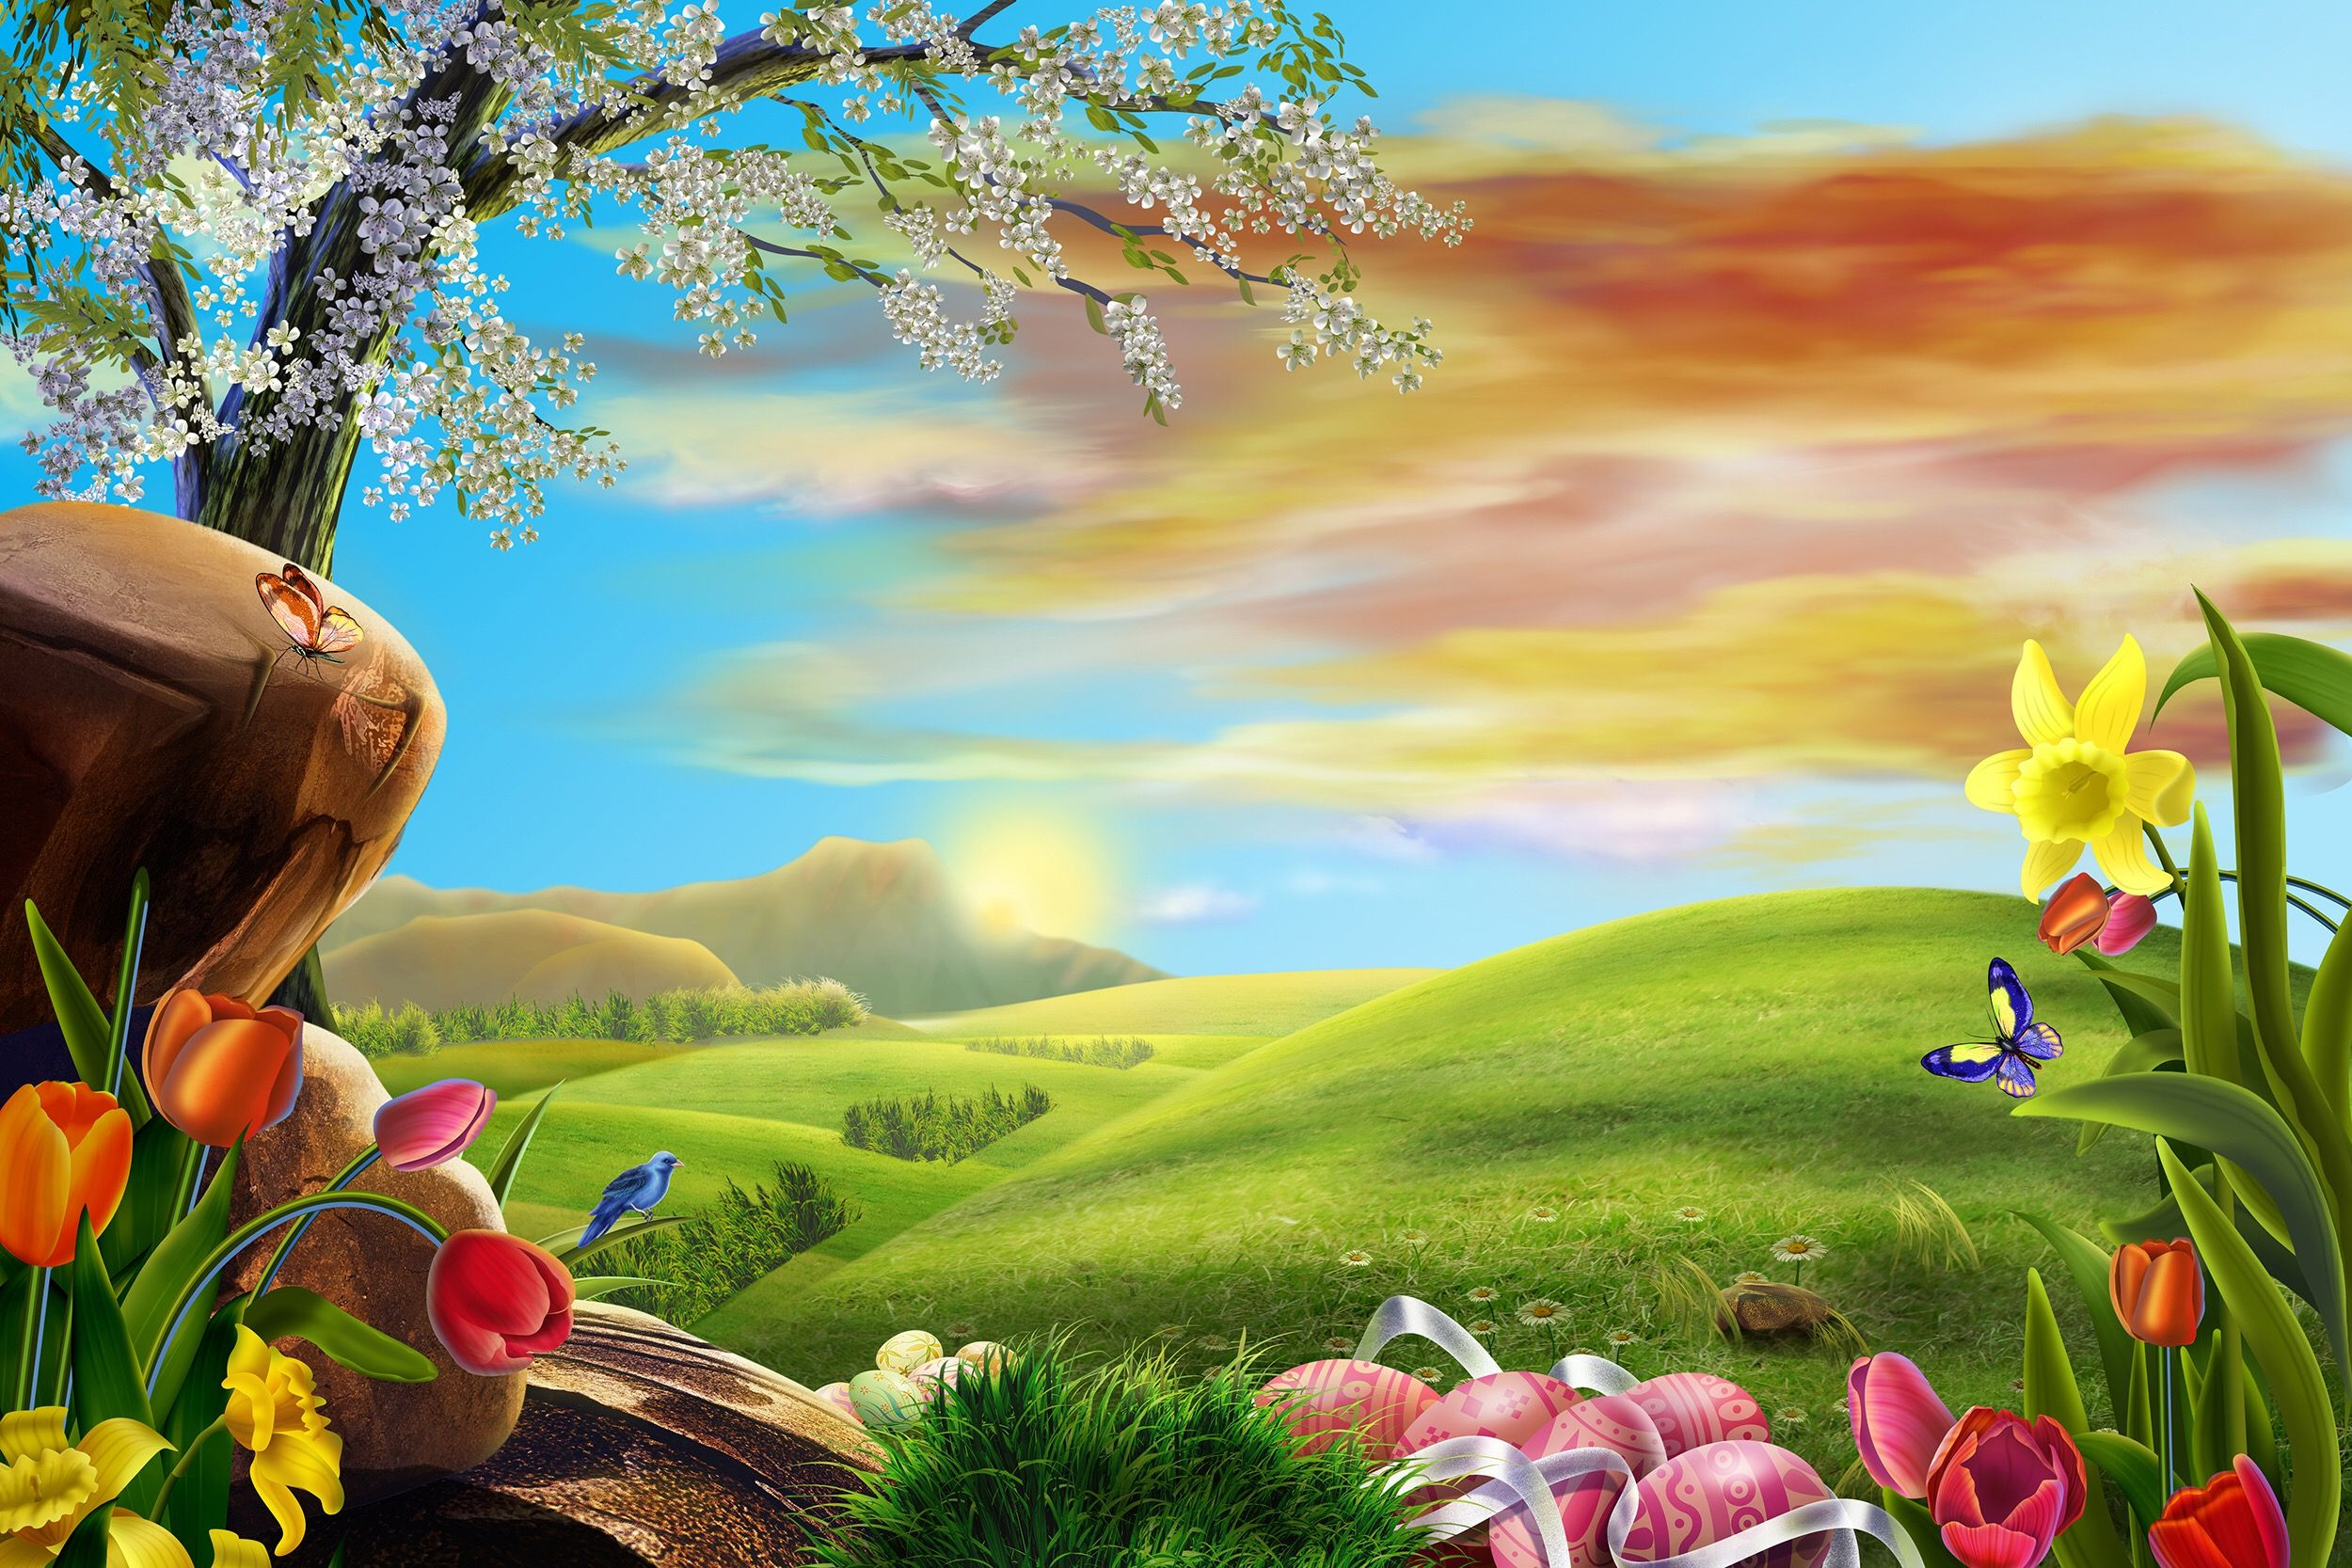 Happy Easter Backdrop Easter Egg Spring Scene Background For Photography Studio Flower Some Bunny Photo Background Video Vinyl In 2020 3d Nature Wallpaper Hd Nature Wallpapers Nature Desktop Wallpaper